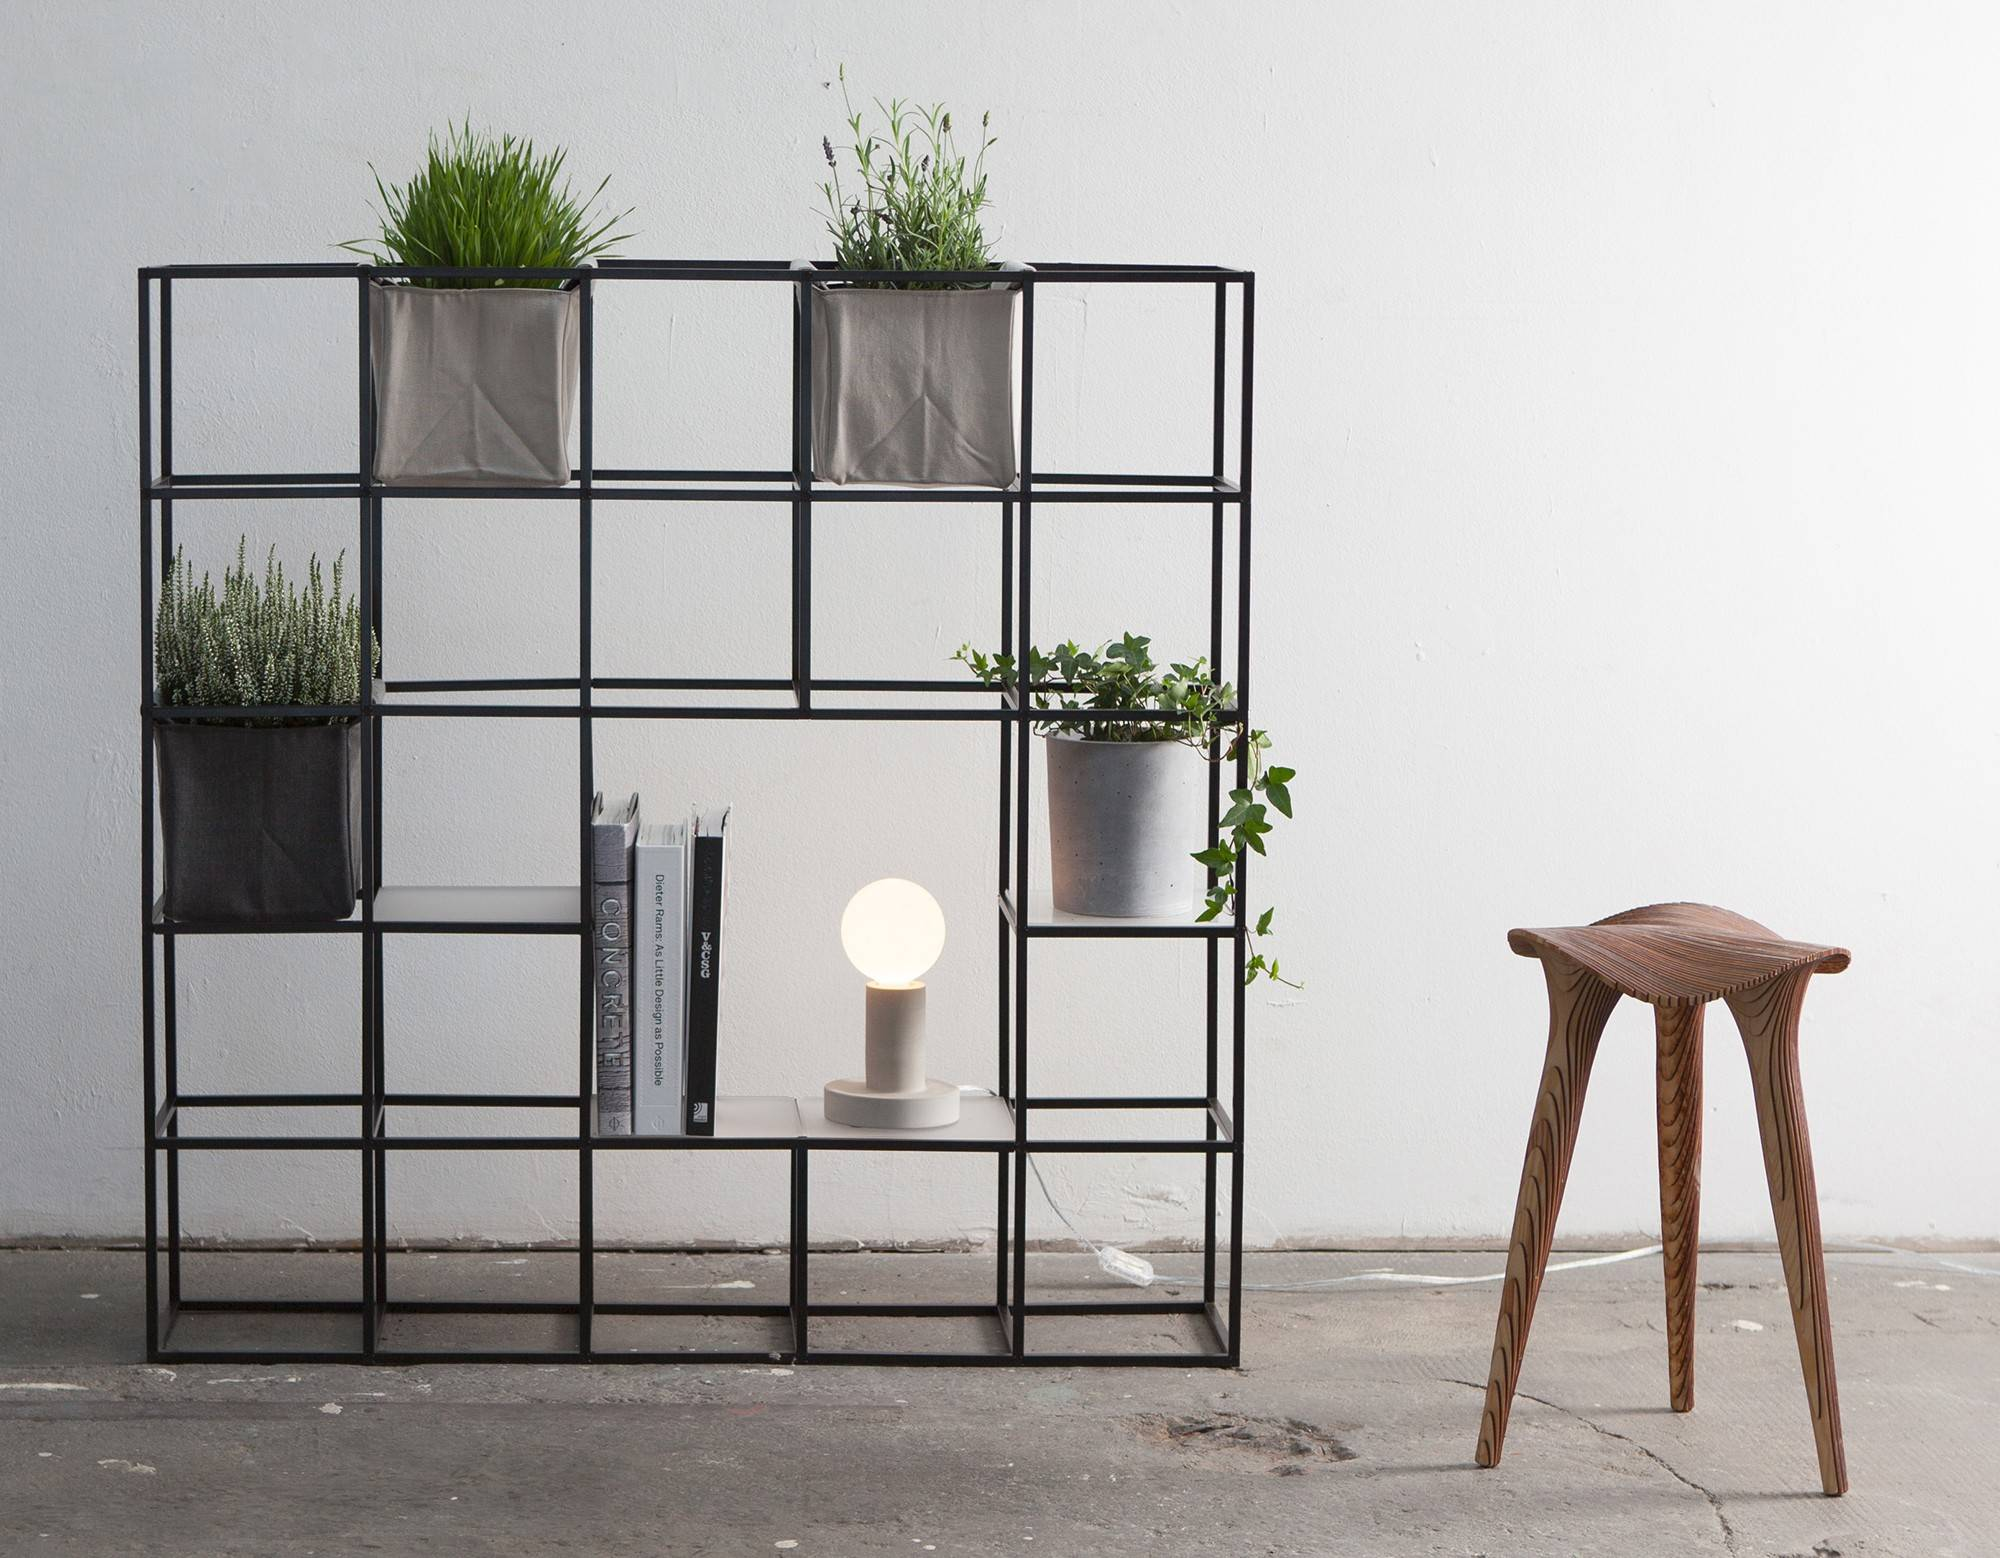 A room divider can add privacy and style to an open floor plan. The Italian-made iPot doubles as a planter and a bookcase.